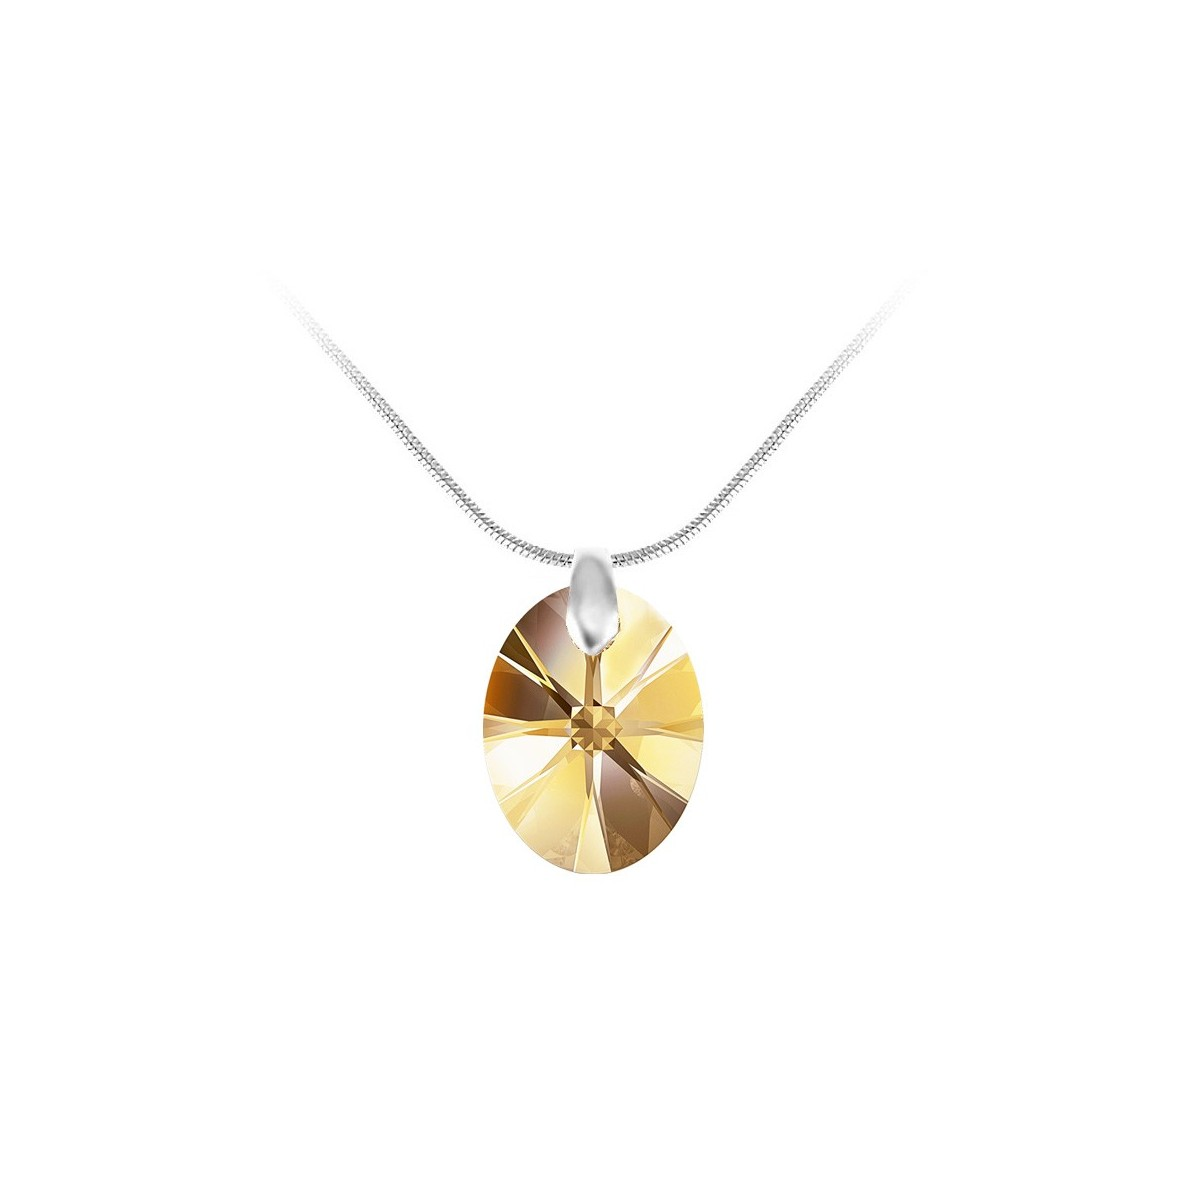 BS049-SN016-GOSH Collier argenté et goutte jaune So Charm made with Crystal from Swarovski